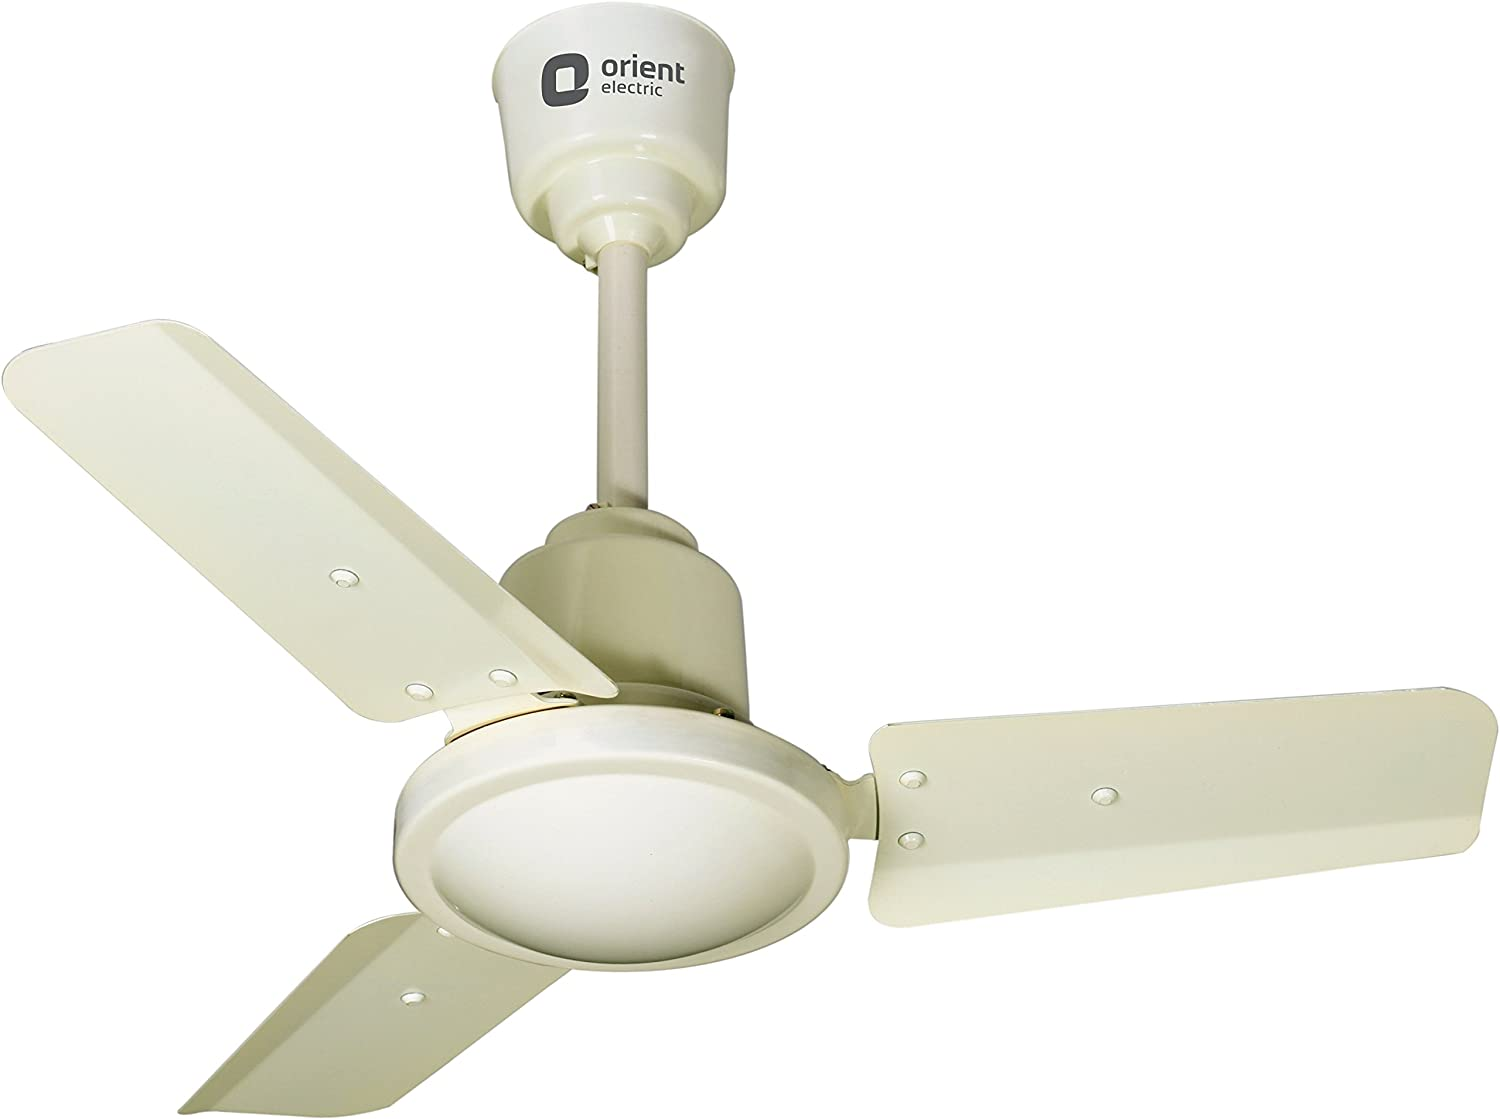 Buy Orient Electric New Air 24 Inch 52 Watt High Speed Ceiling Fan White Online At Low Prices In India Amazon In